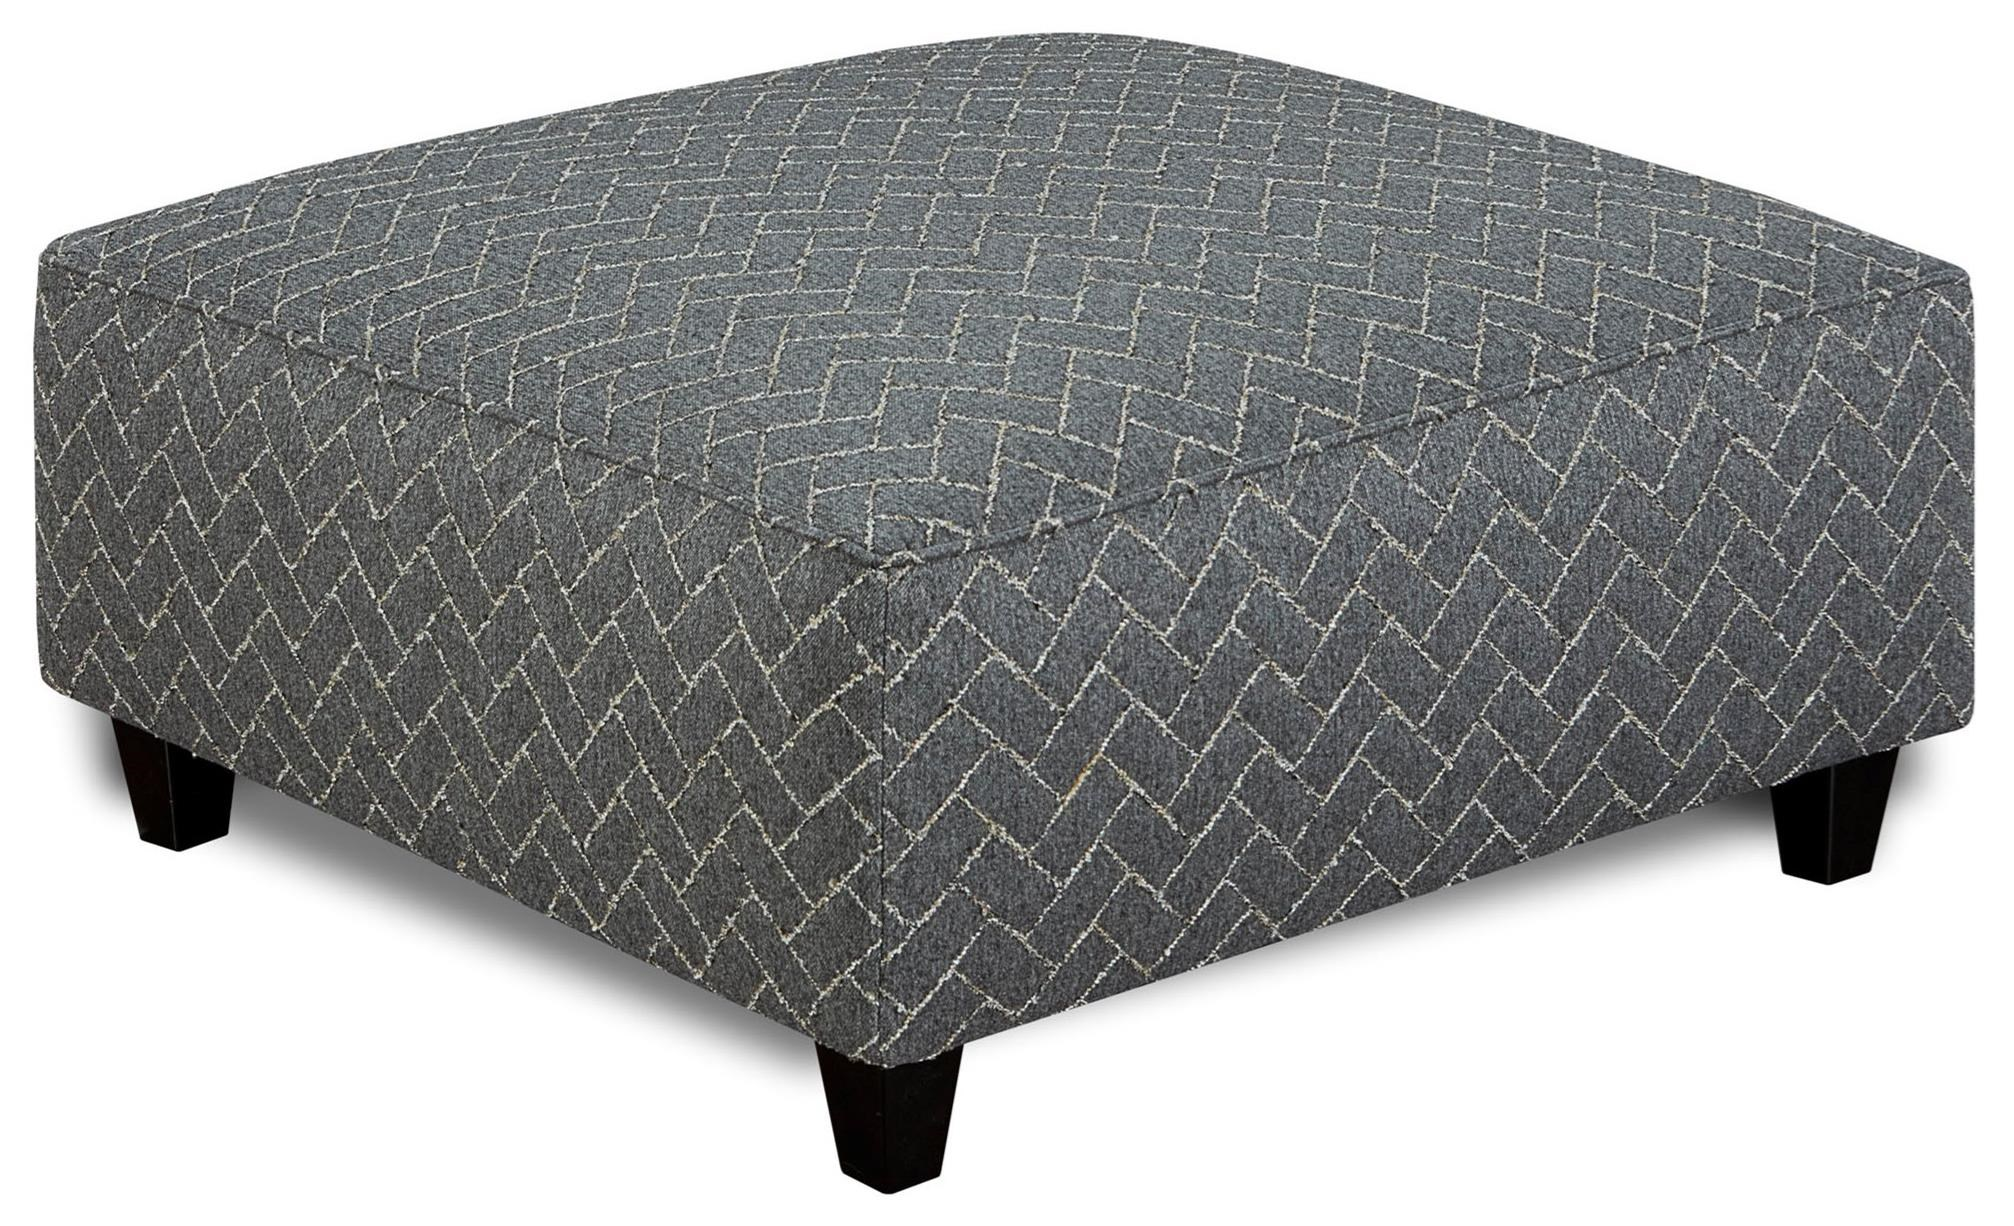 Fusion Furniture 109 Square Ottoman - Item Number: 109Herring Charcoal